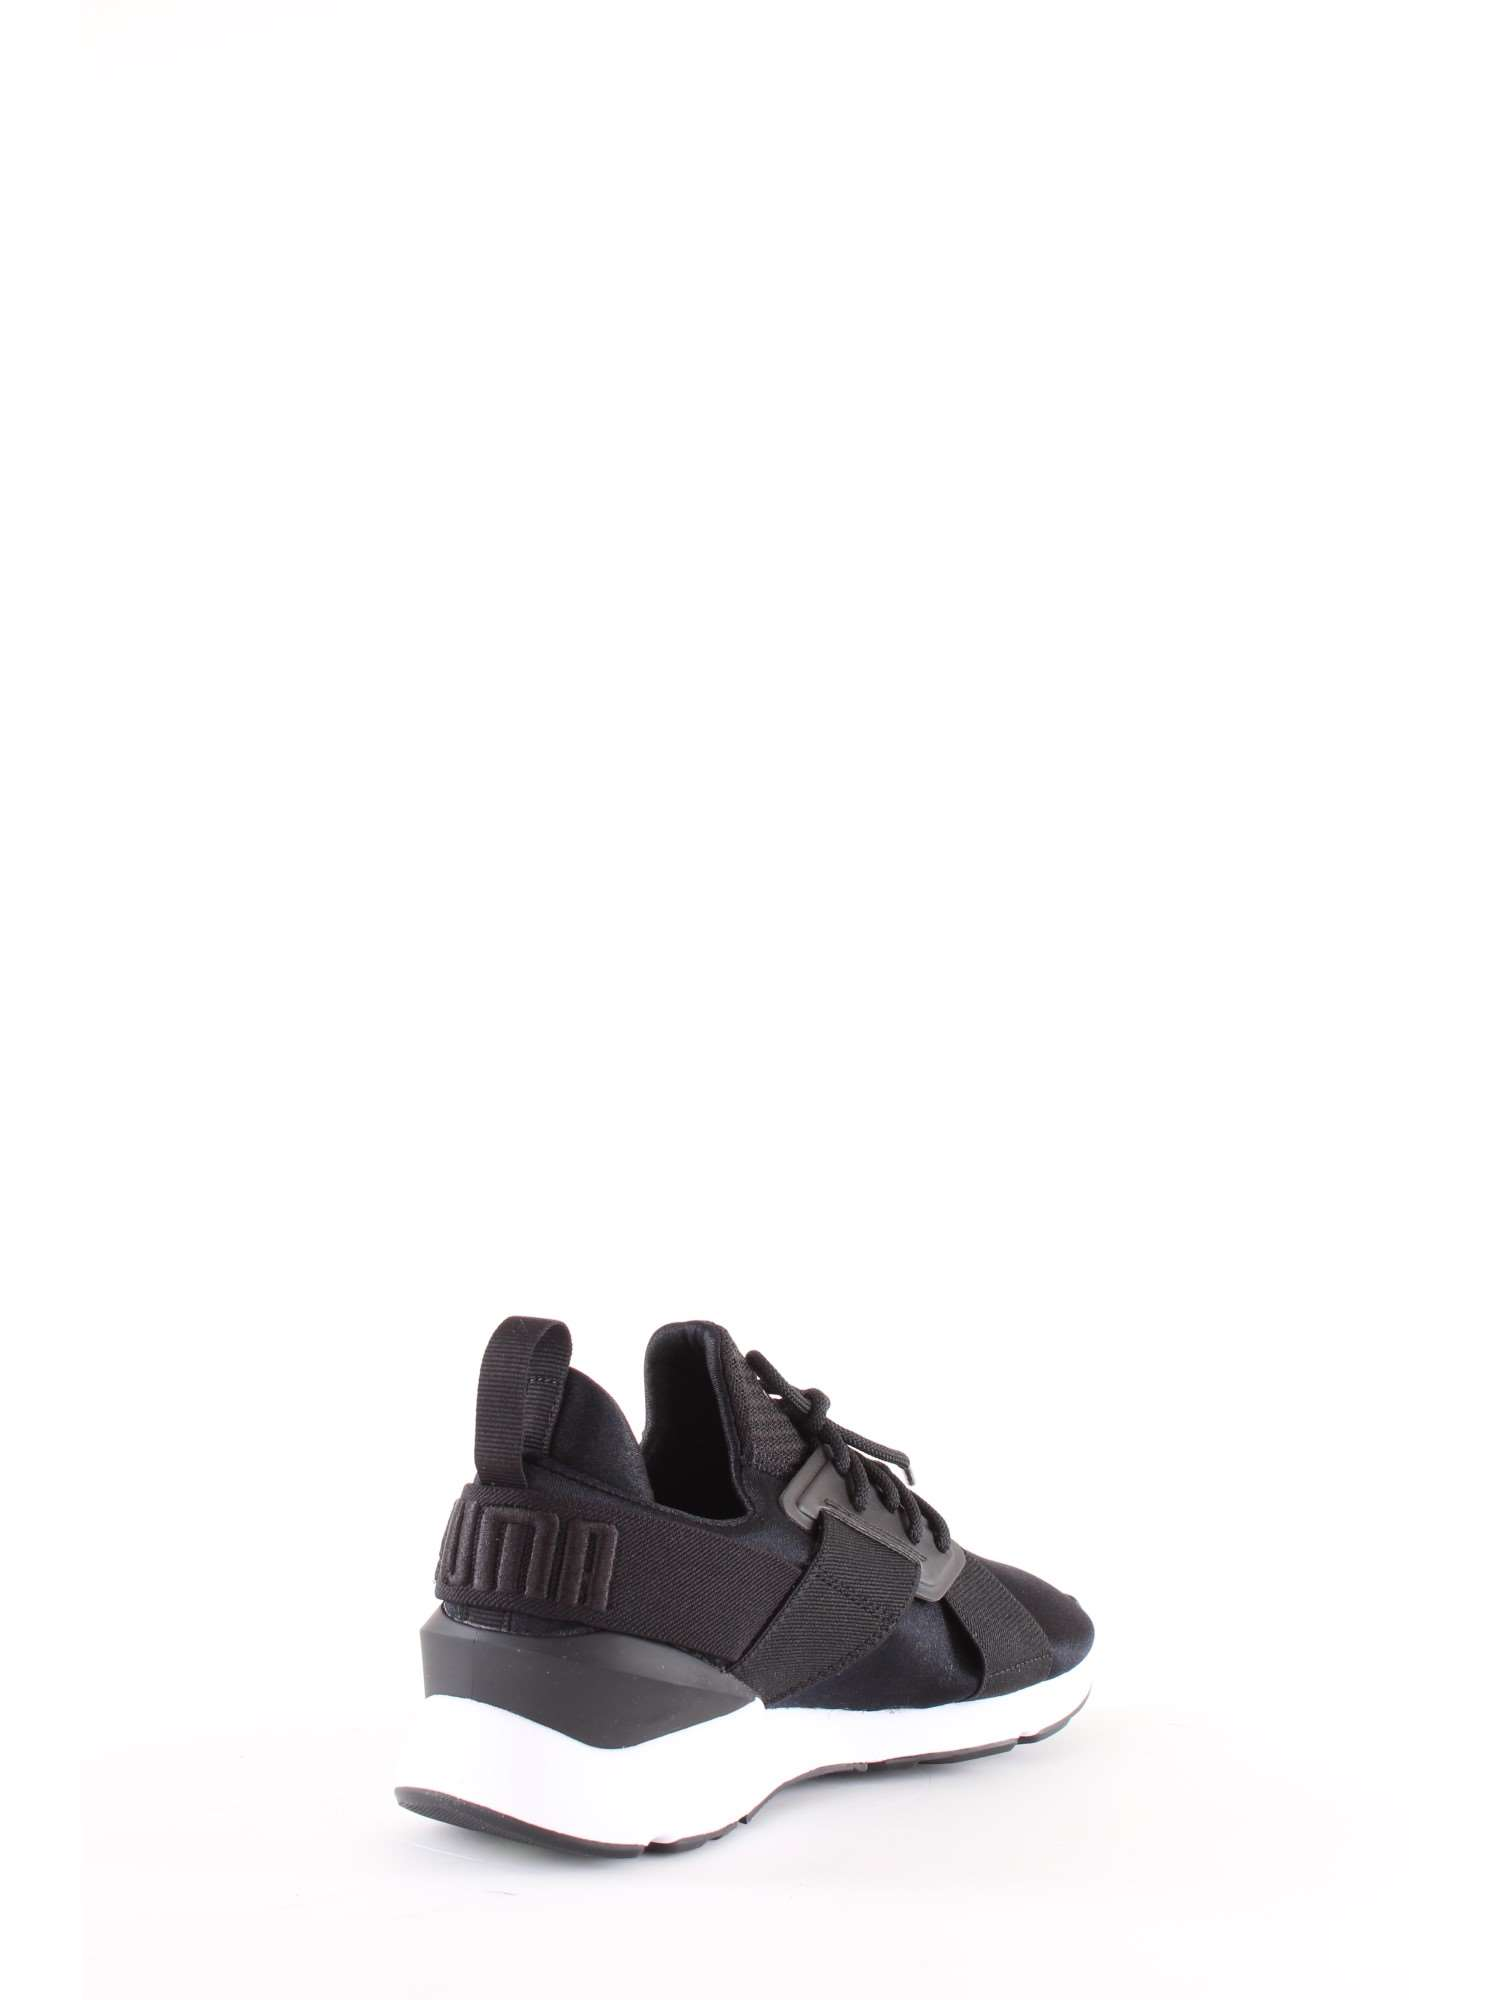 03 Lente zomer Puma 365534 muse Damessneakers satin 03 ep wns black qqz0vgwr